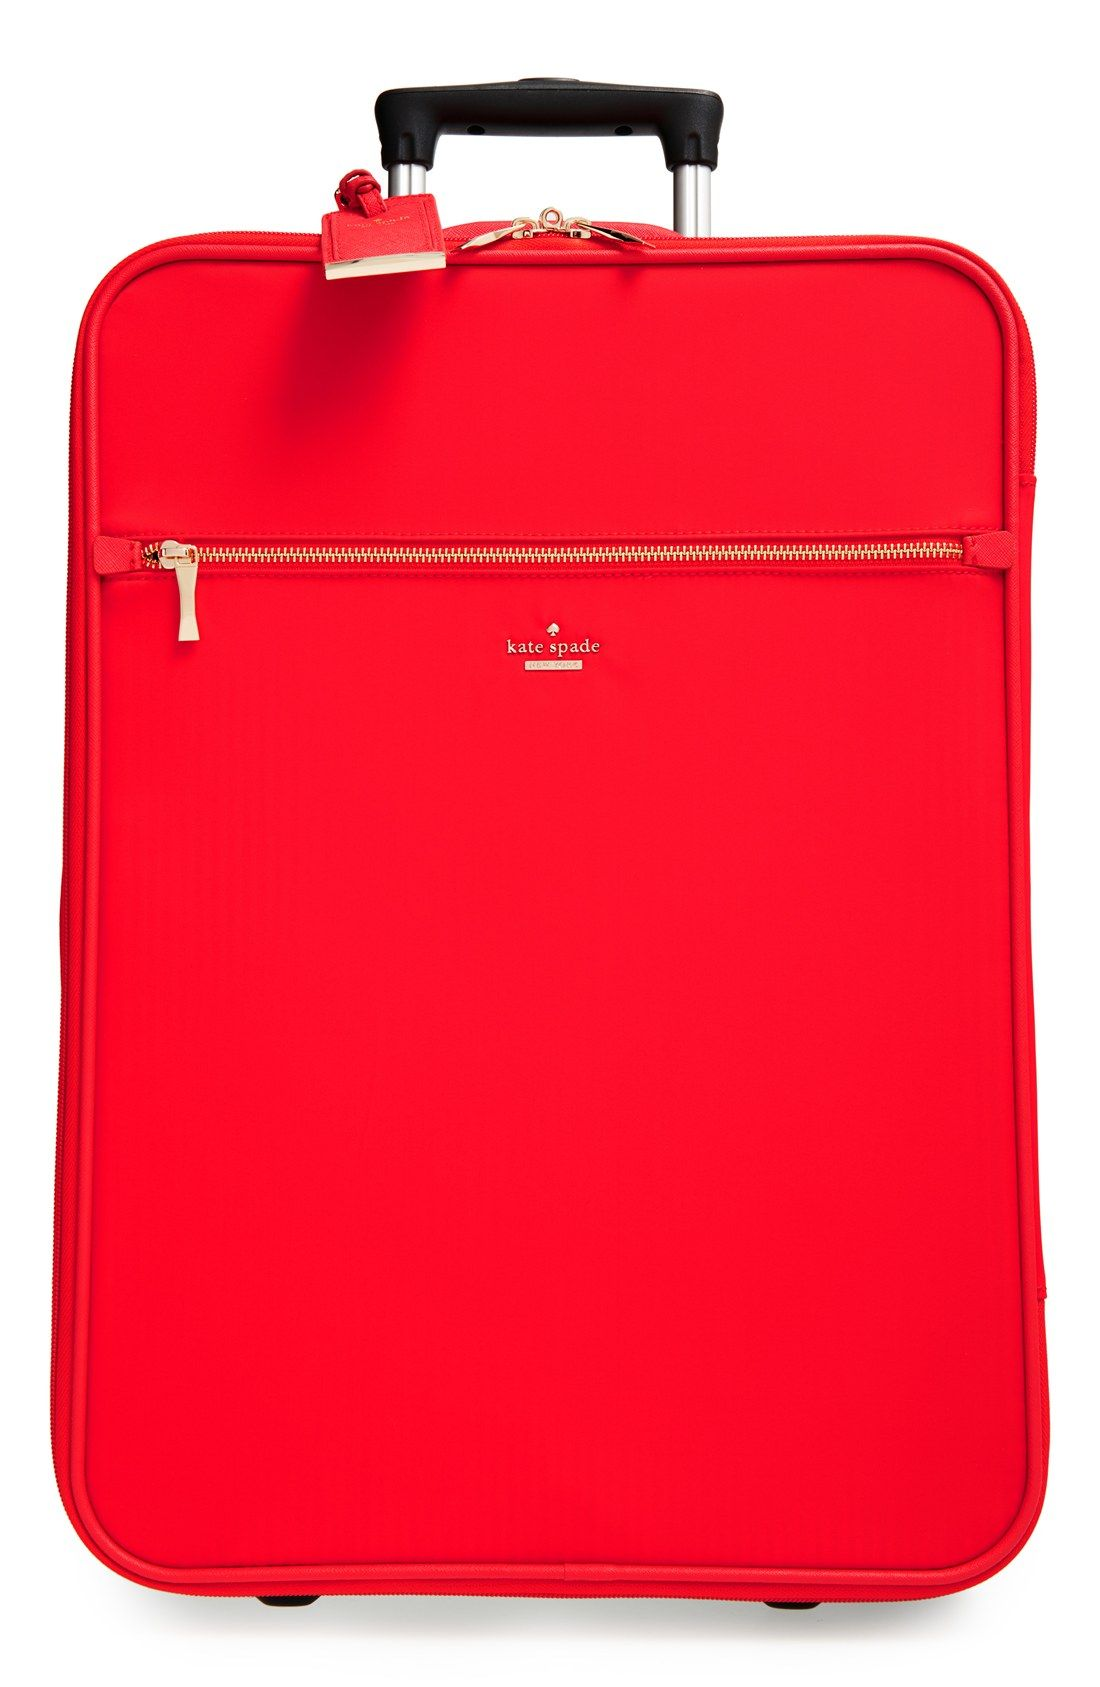 65e78a925d99 kate spade new york  classic  nylon international two-wheel carry-on  suitcase (20 Inch)